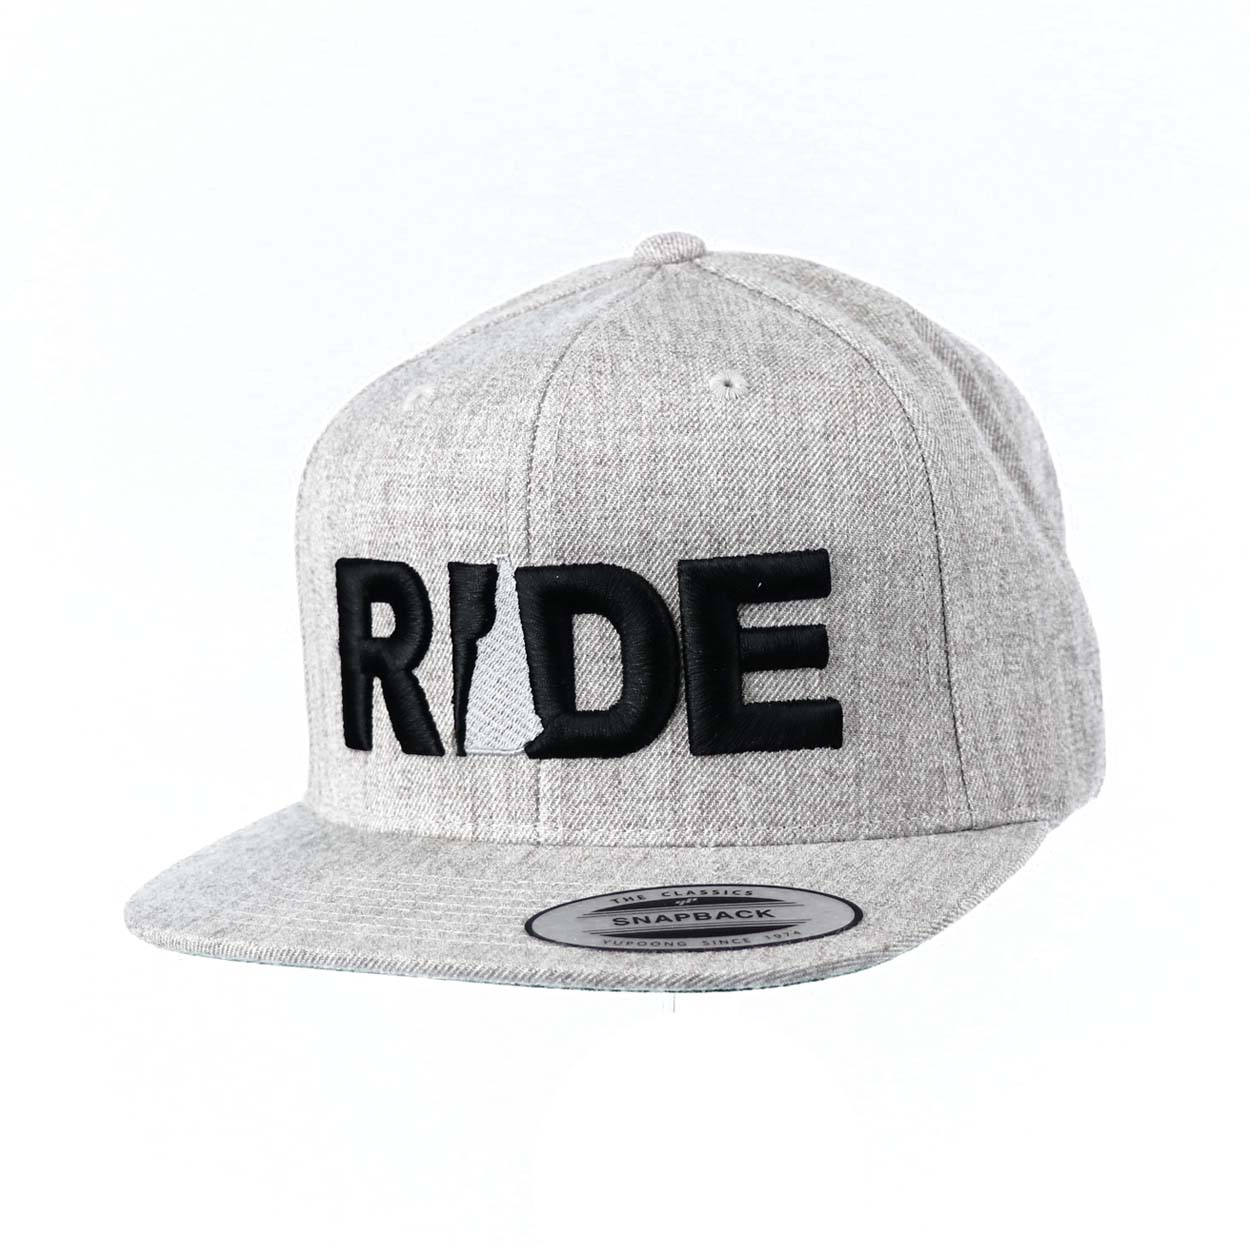 Ride New Hampshire Classic Embroidered  Snapback Flat Brim Hat Gray/Black